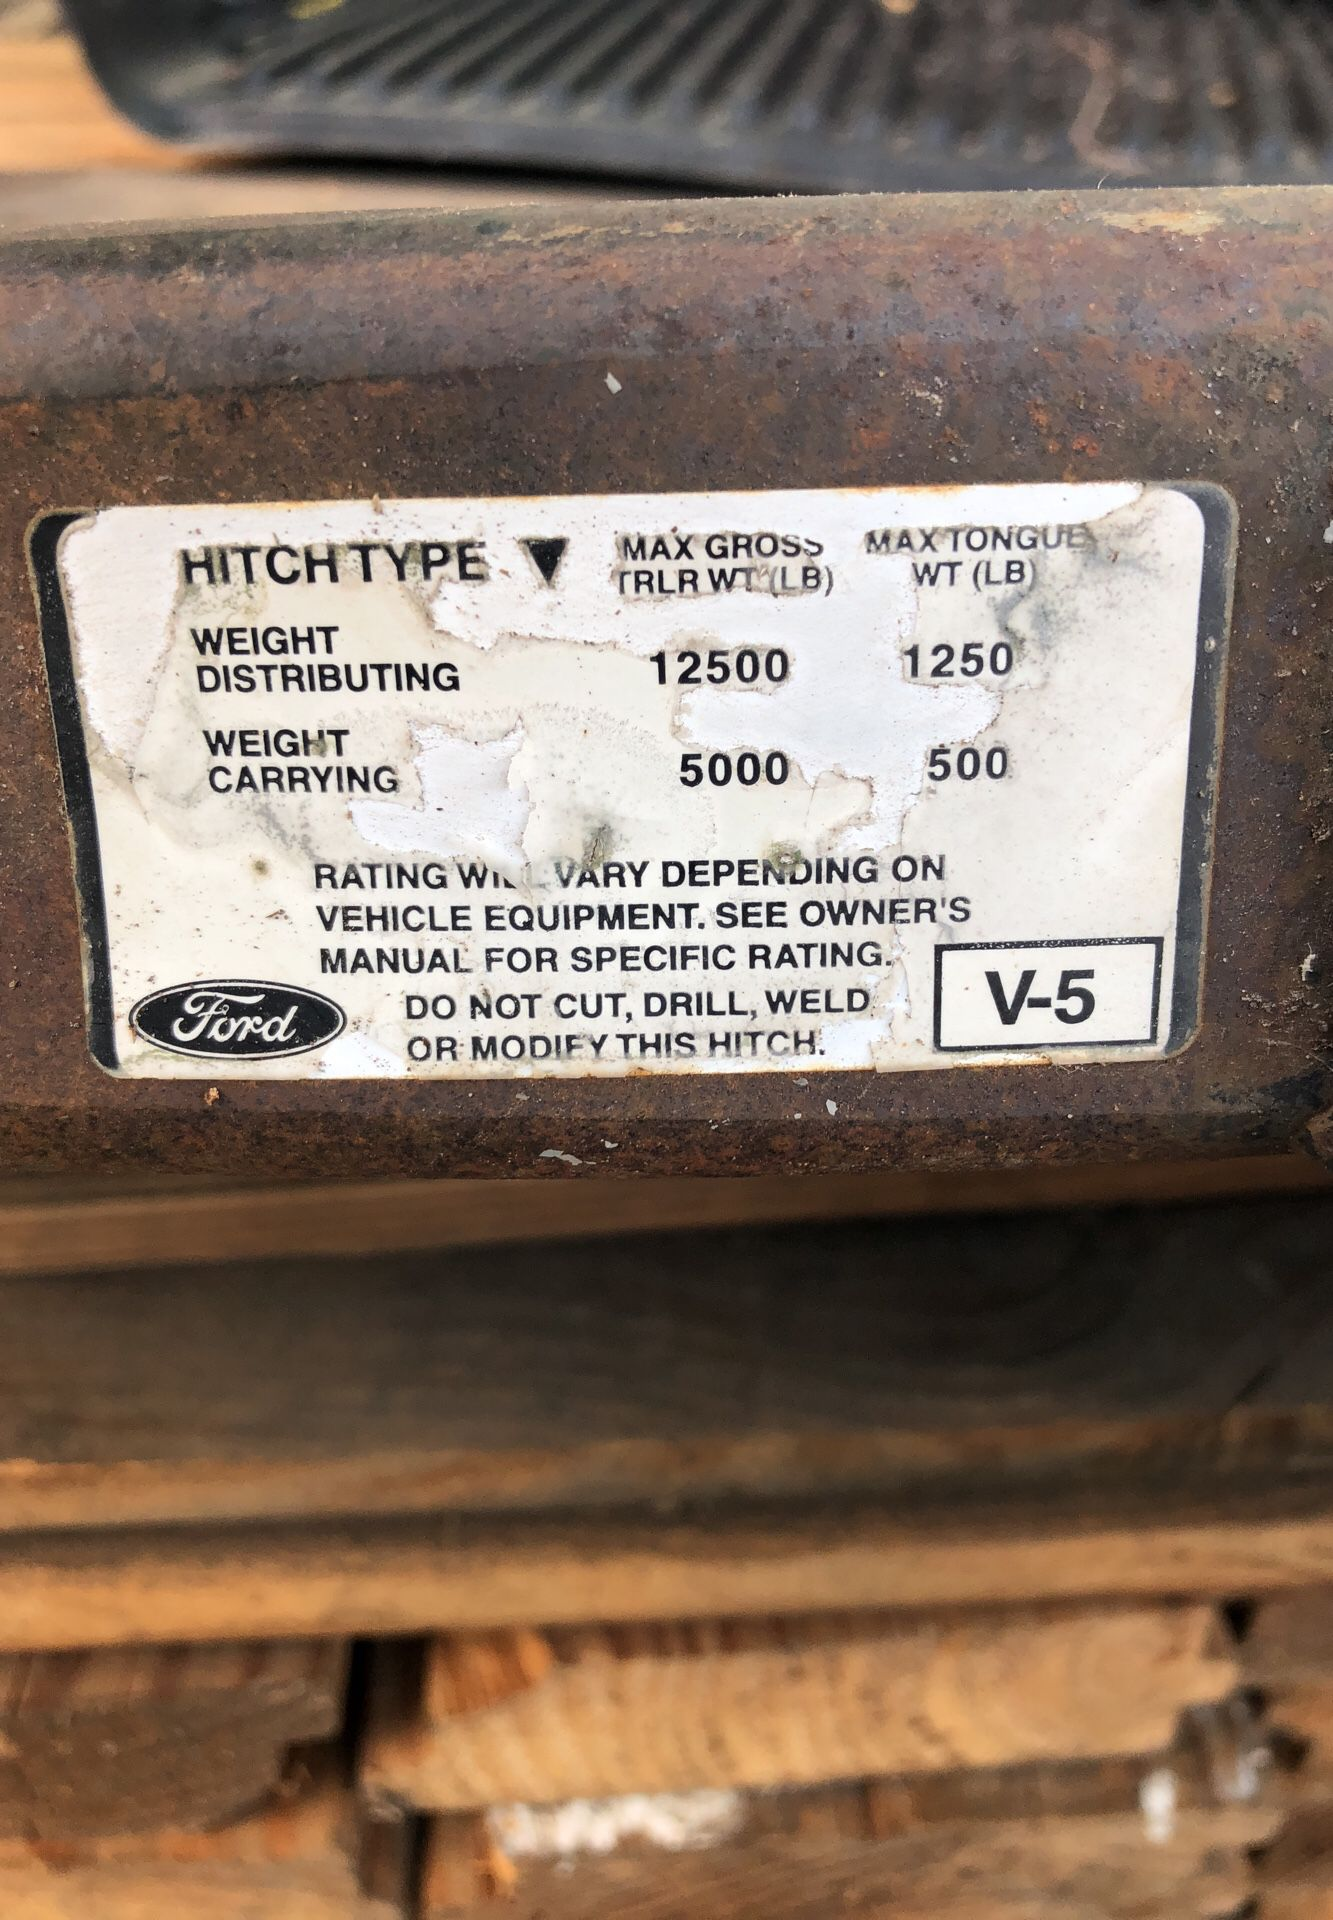 Ford dually trailer hitch